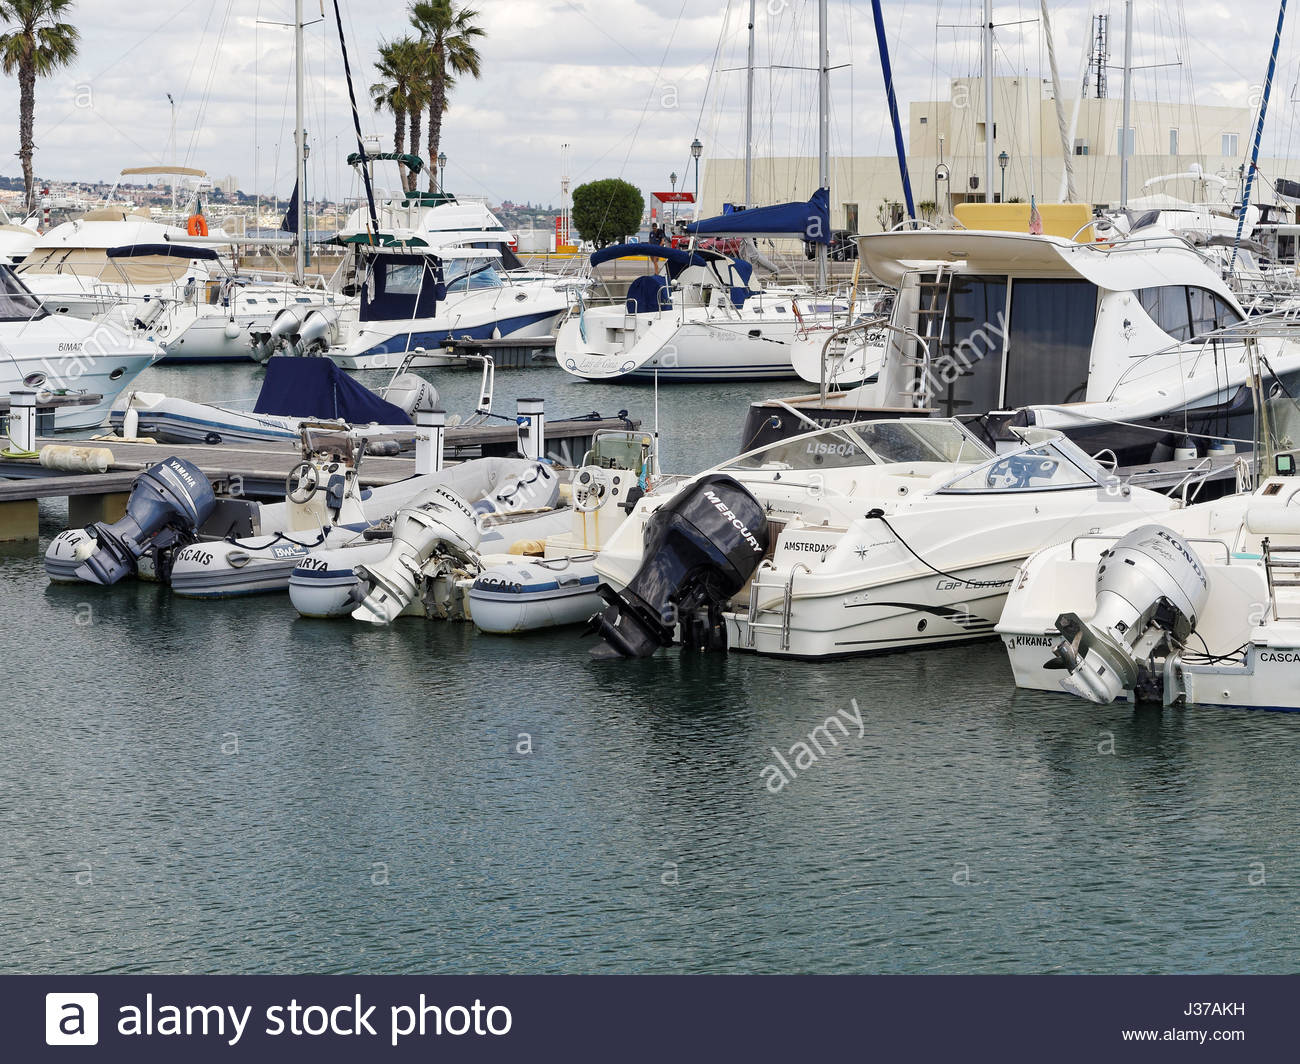 four boats tied up at floating pier with outboard motors, Cascais Marina, Portugal - Stock Image